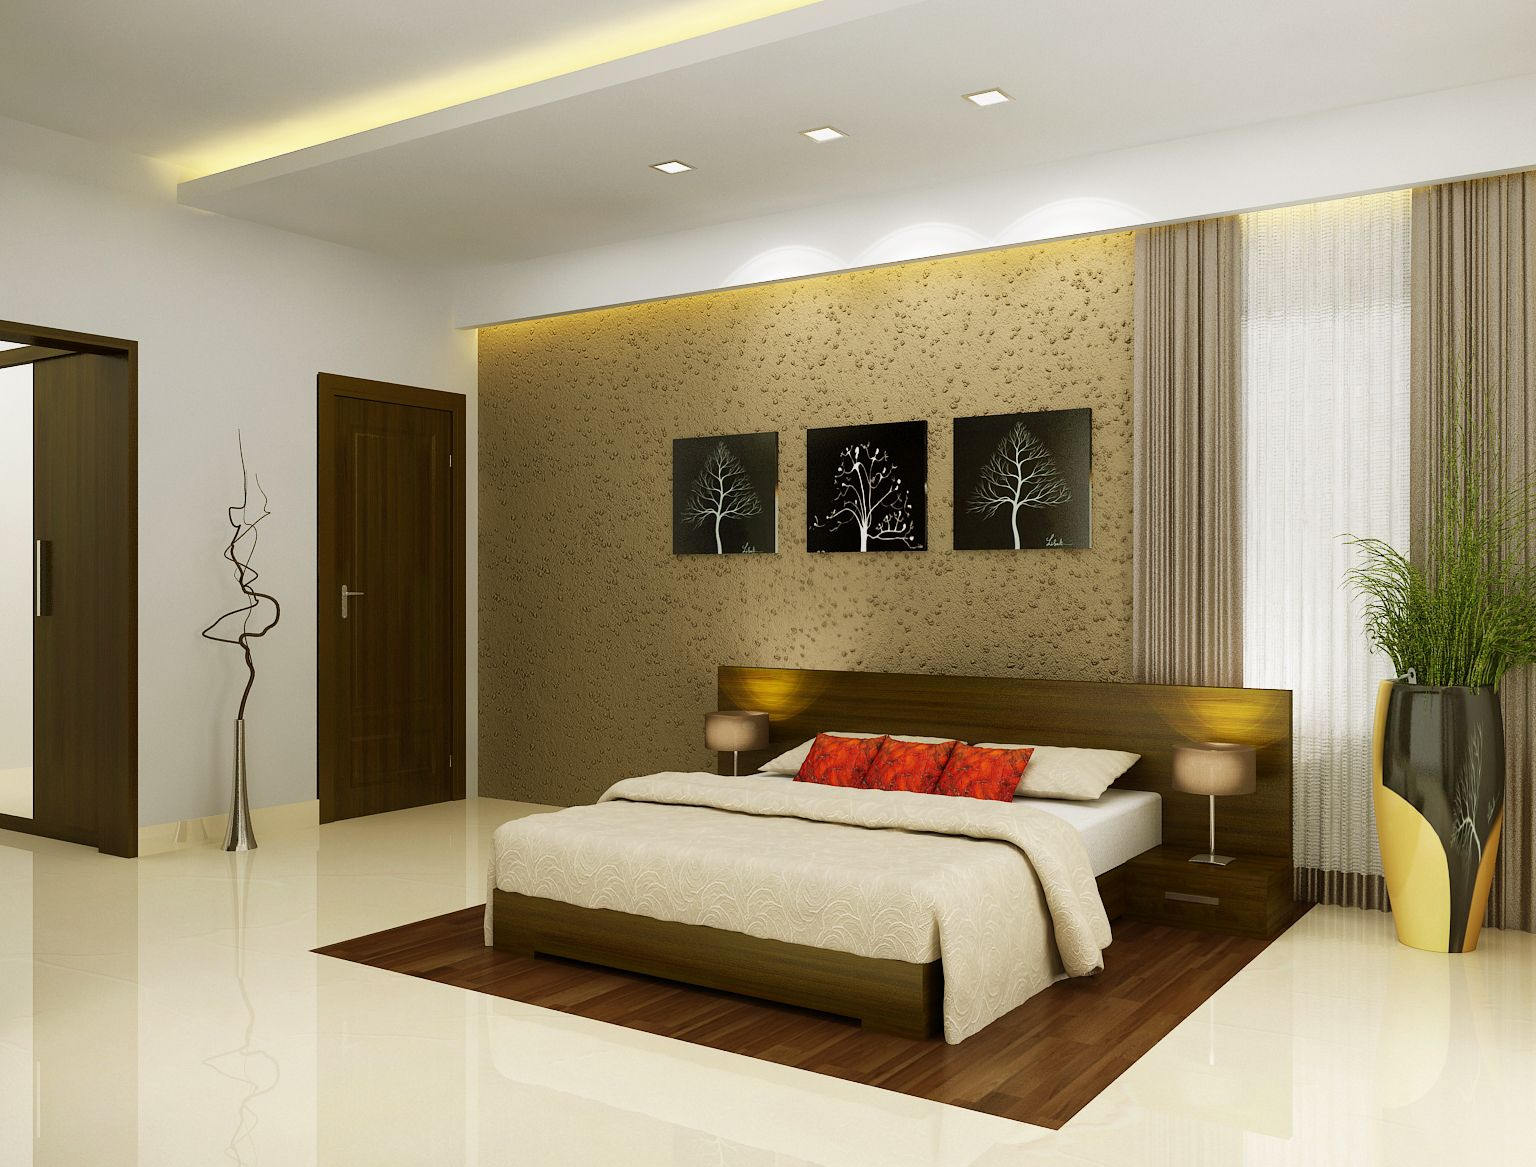 bedroom design kerala style design ideas 2017 2018 On interior design bedroom kerala style